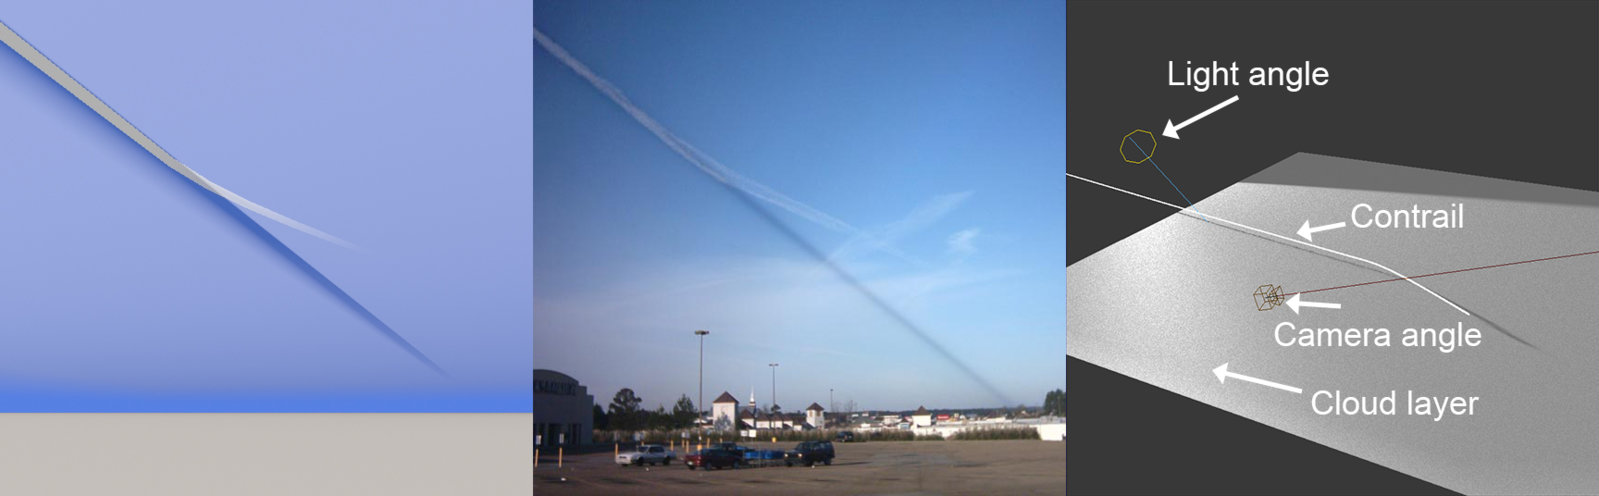 contrail_shadow_simulated.jpg